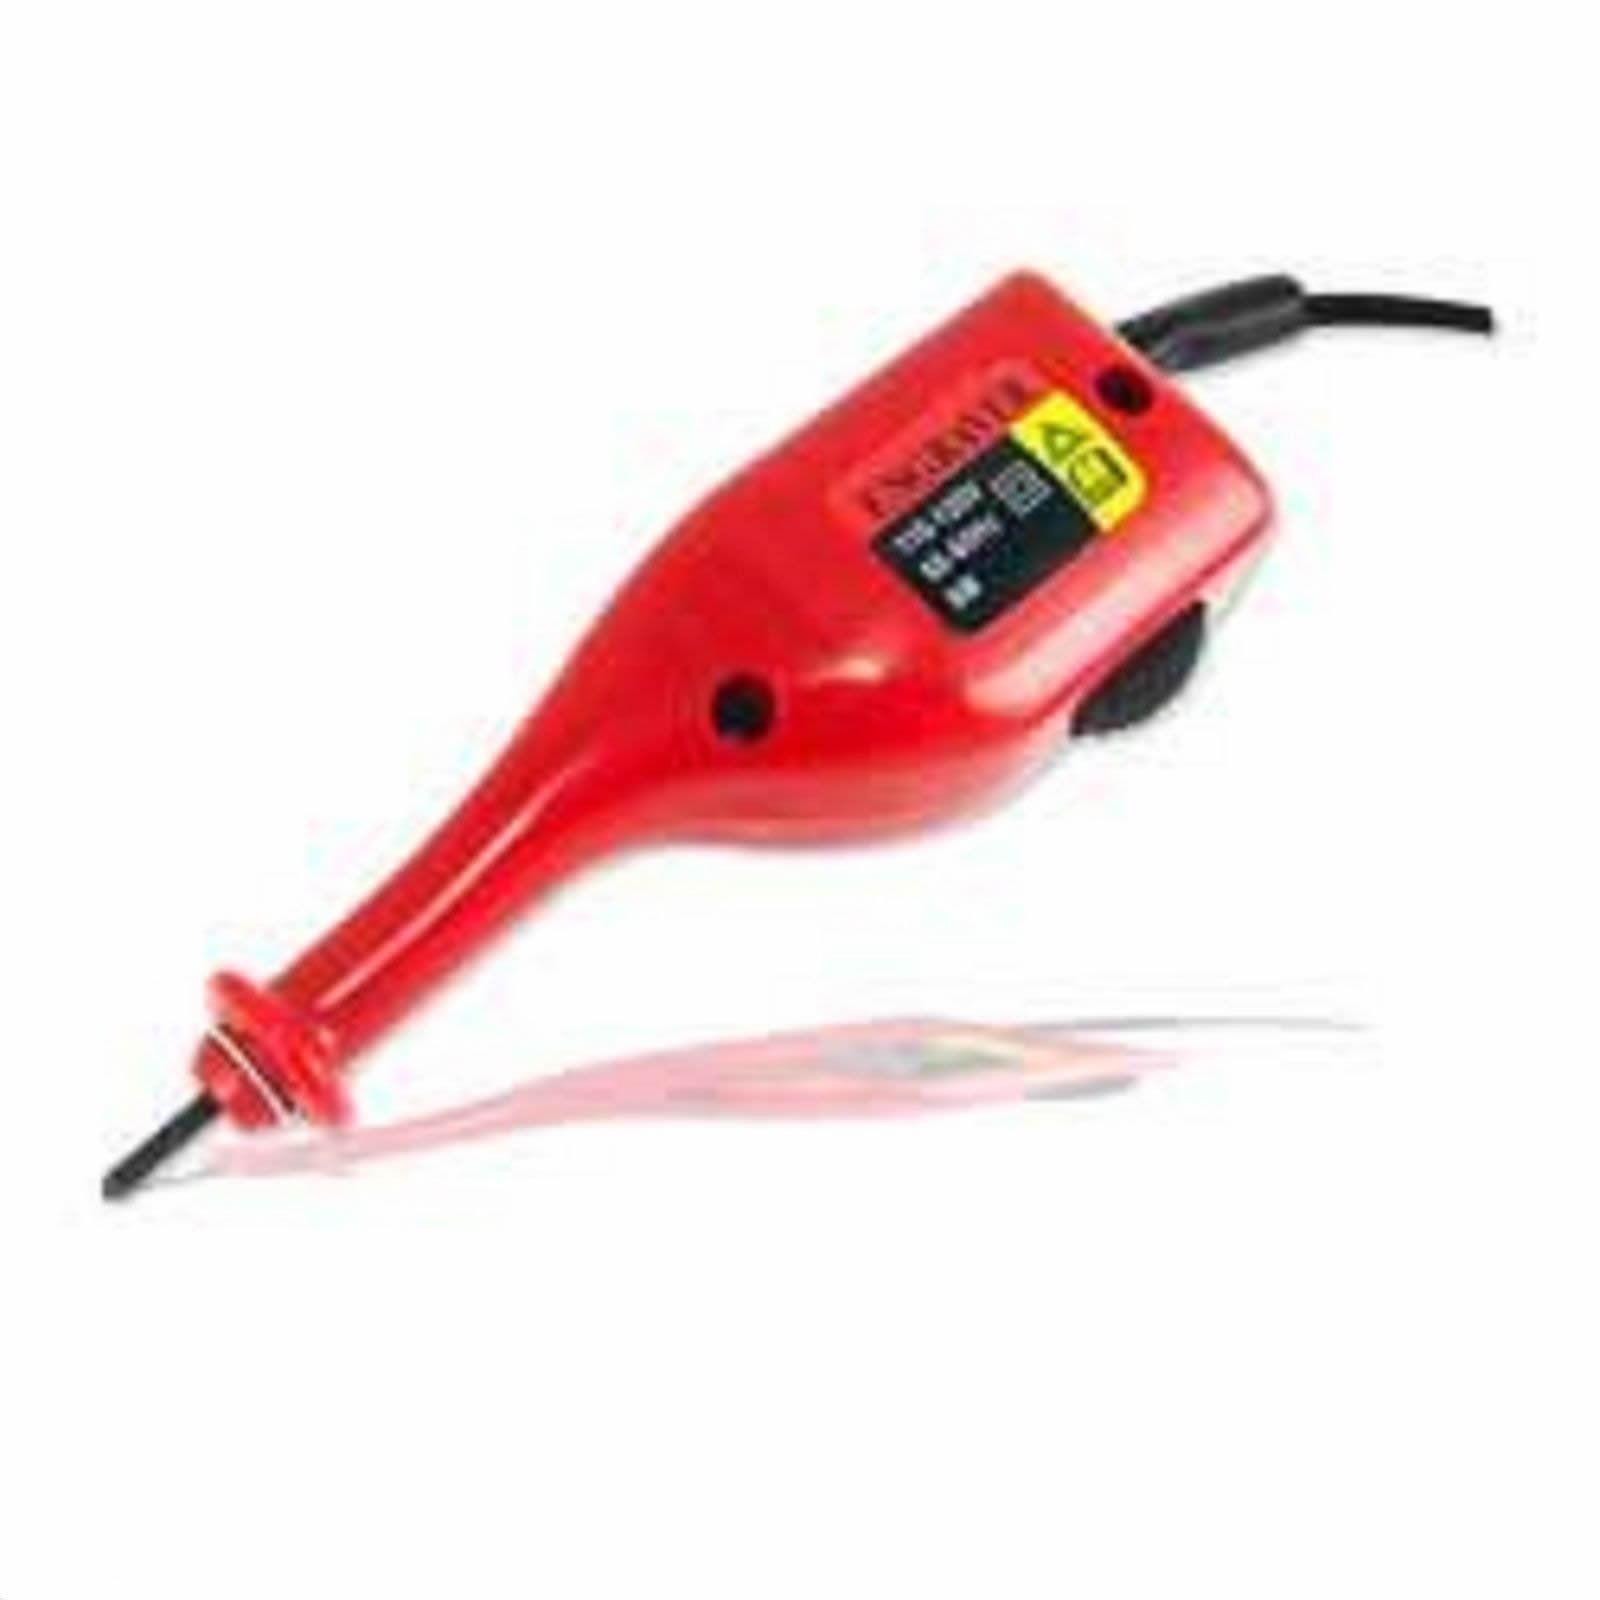 Electric Hand Vibrating Hobby Etching Glass Metal Jewelry Power Tool Engraver by Generic